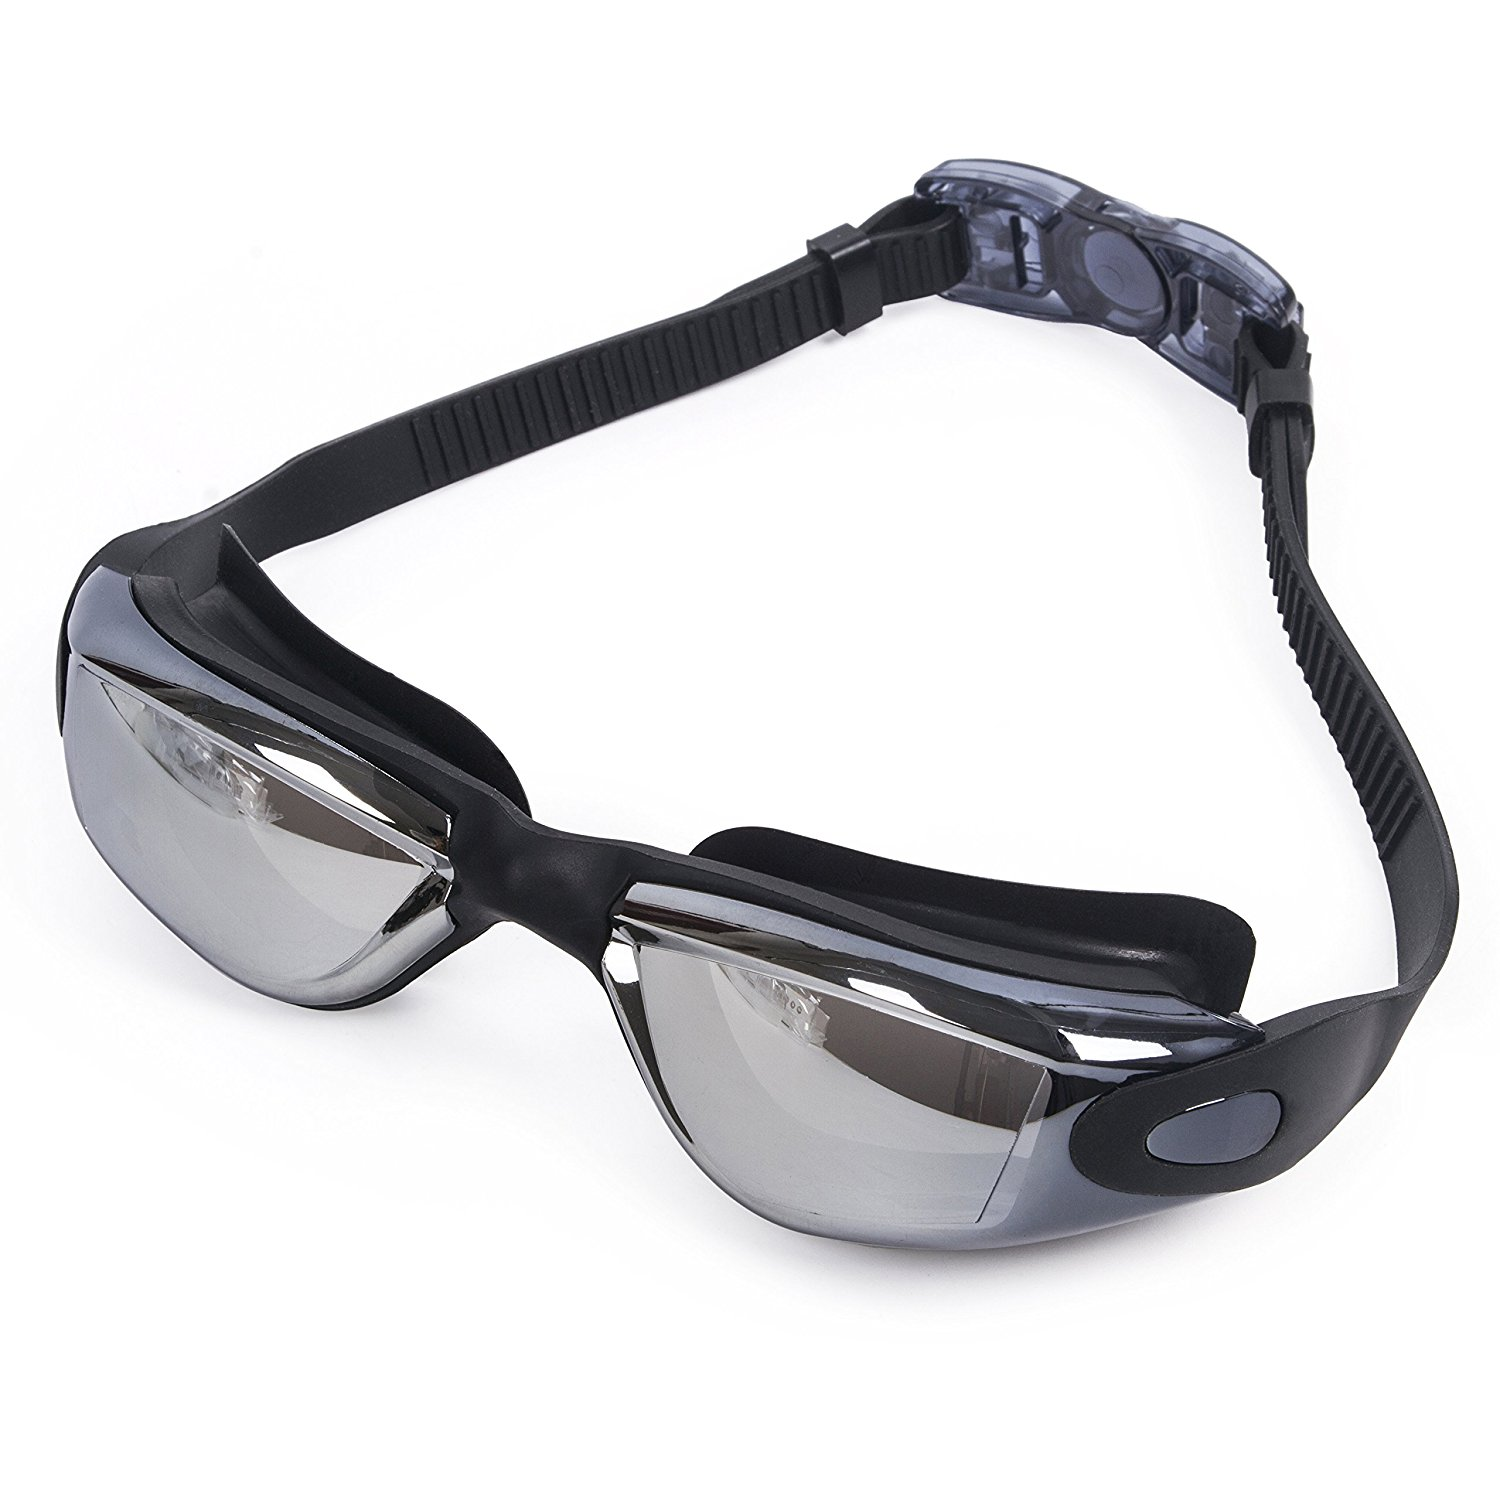 20fa7c9cce Get Quotations · Swimming Goggles Adult - SUNVP Clear Vision UV Protection  Anti Fog Scratch Resistant Lenses - Comfort